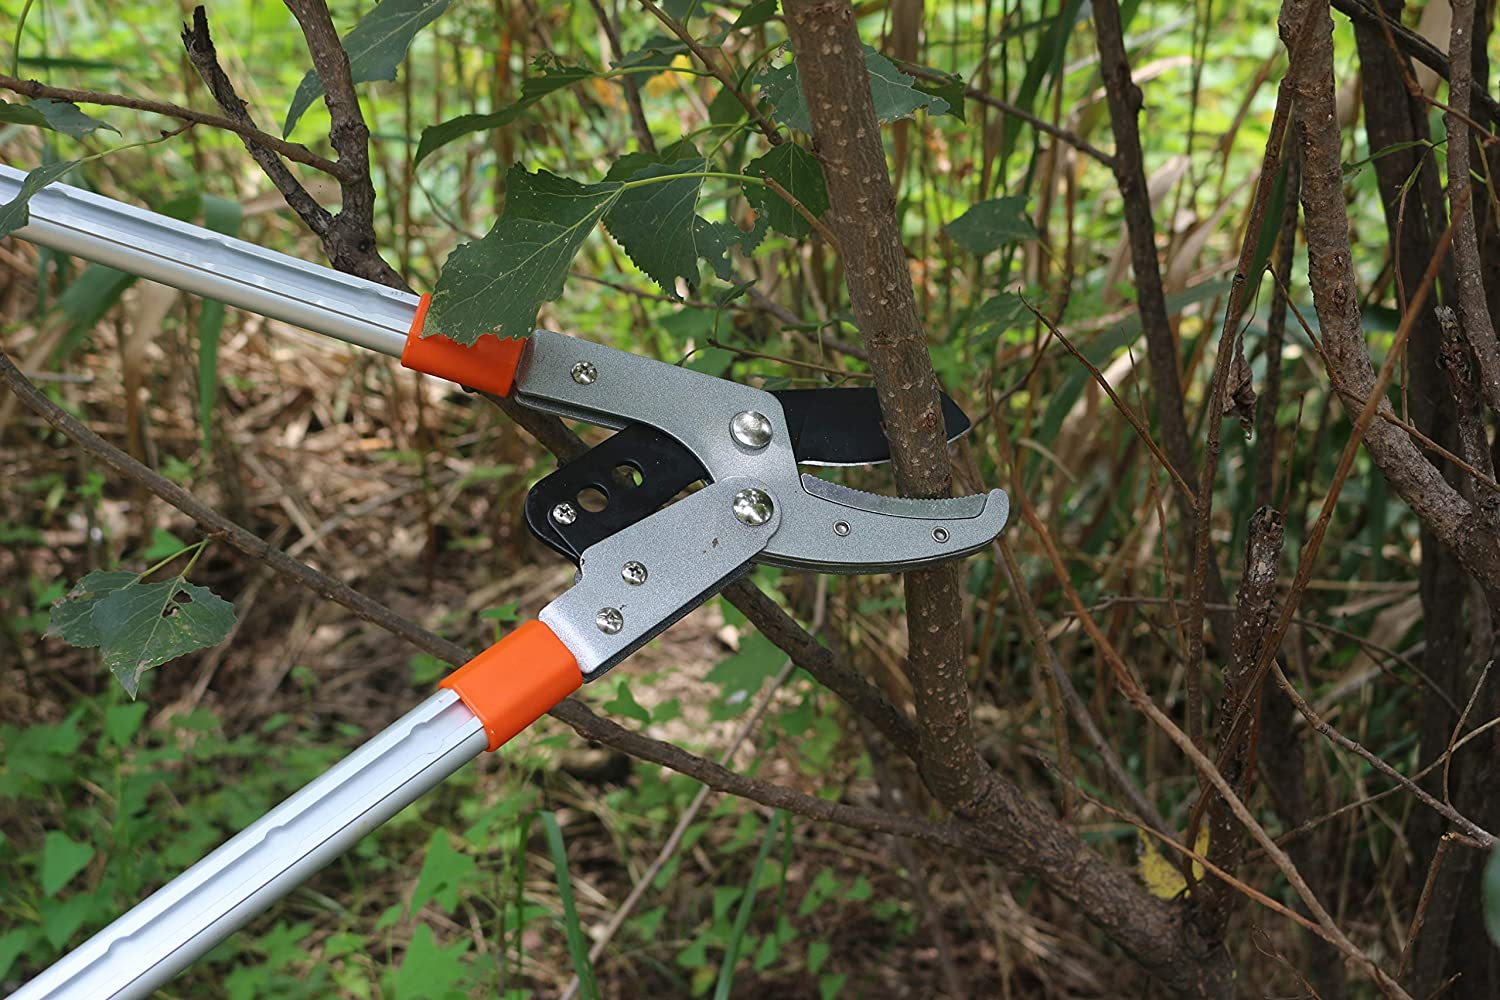 THANOS Bypass Hand Pruners for Gardening Farming Arboriculture Pruning Shears with Ergonomic Handles,SK-5 Steel Blade,Garden Clippers with Shock-Absorbent Spring /& Safety Lock Flower Arranging